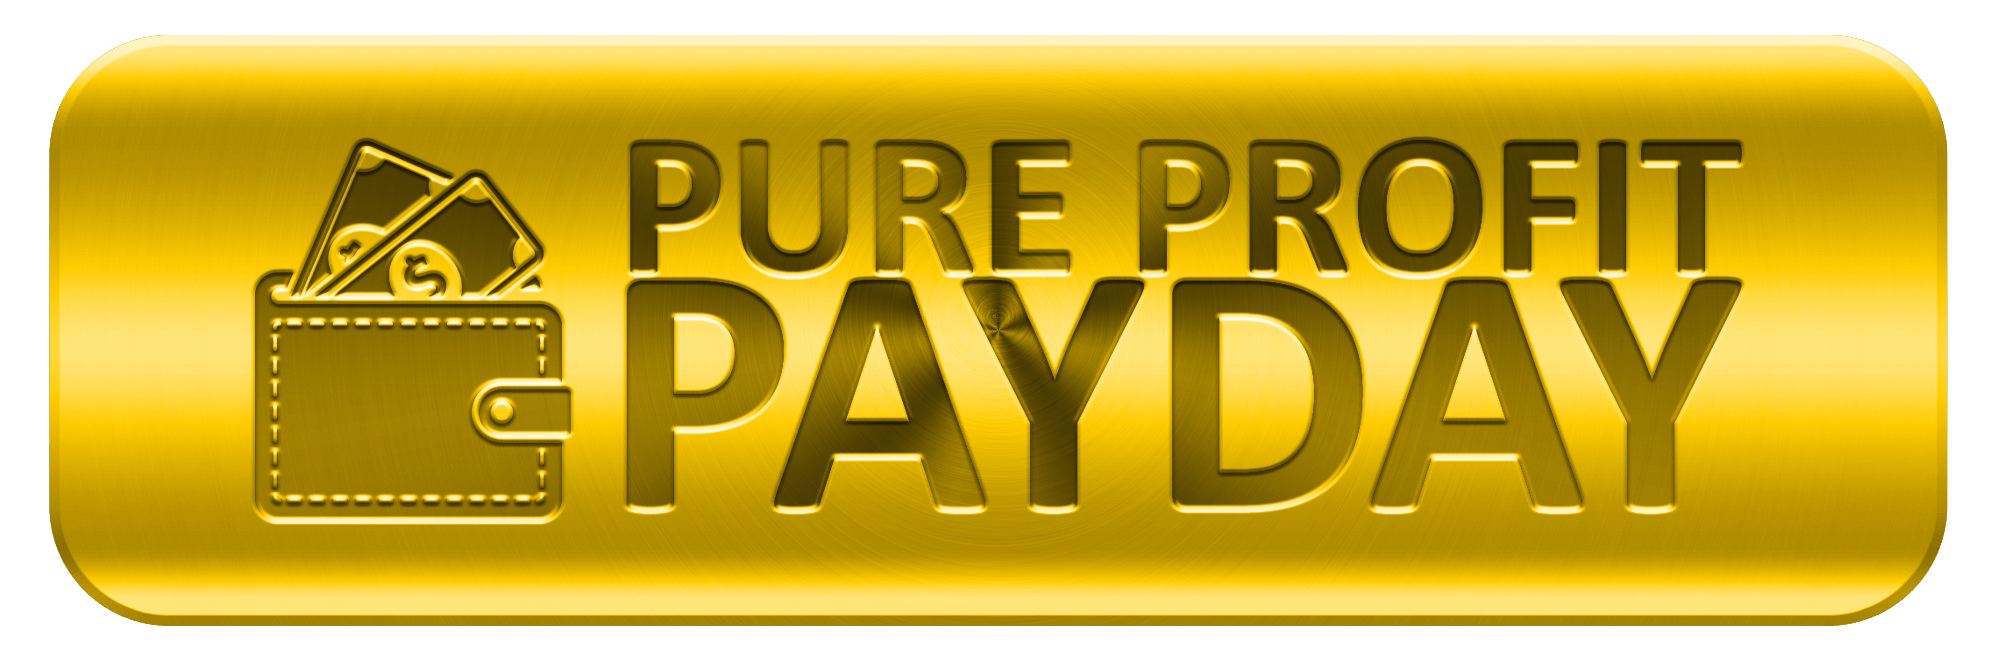 Pure Profit Payday coupon